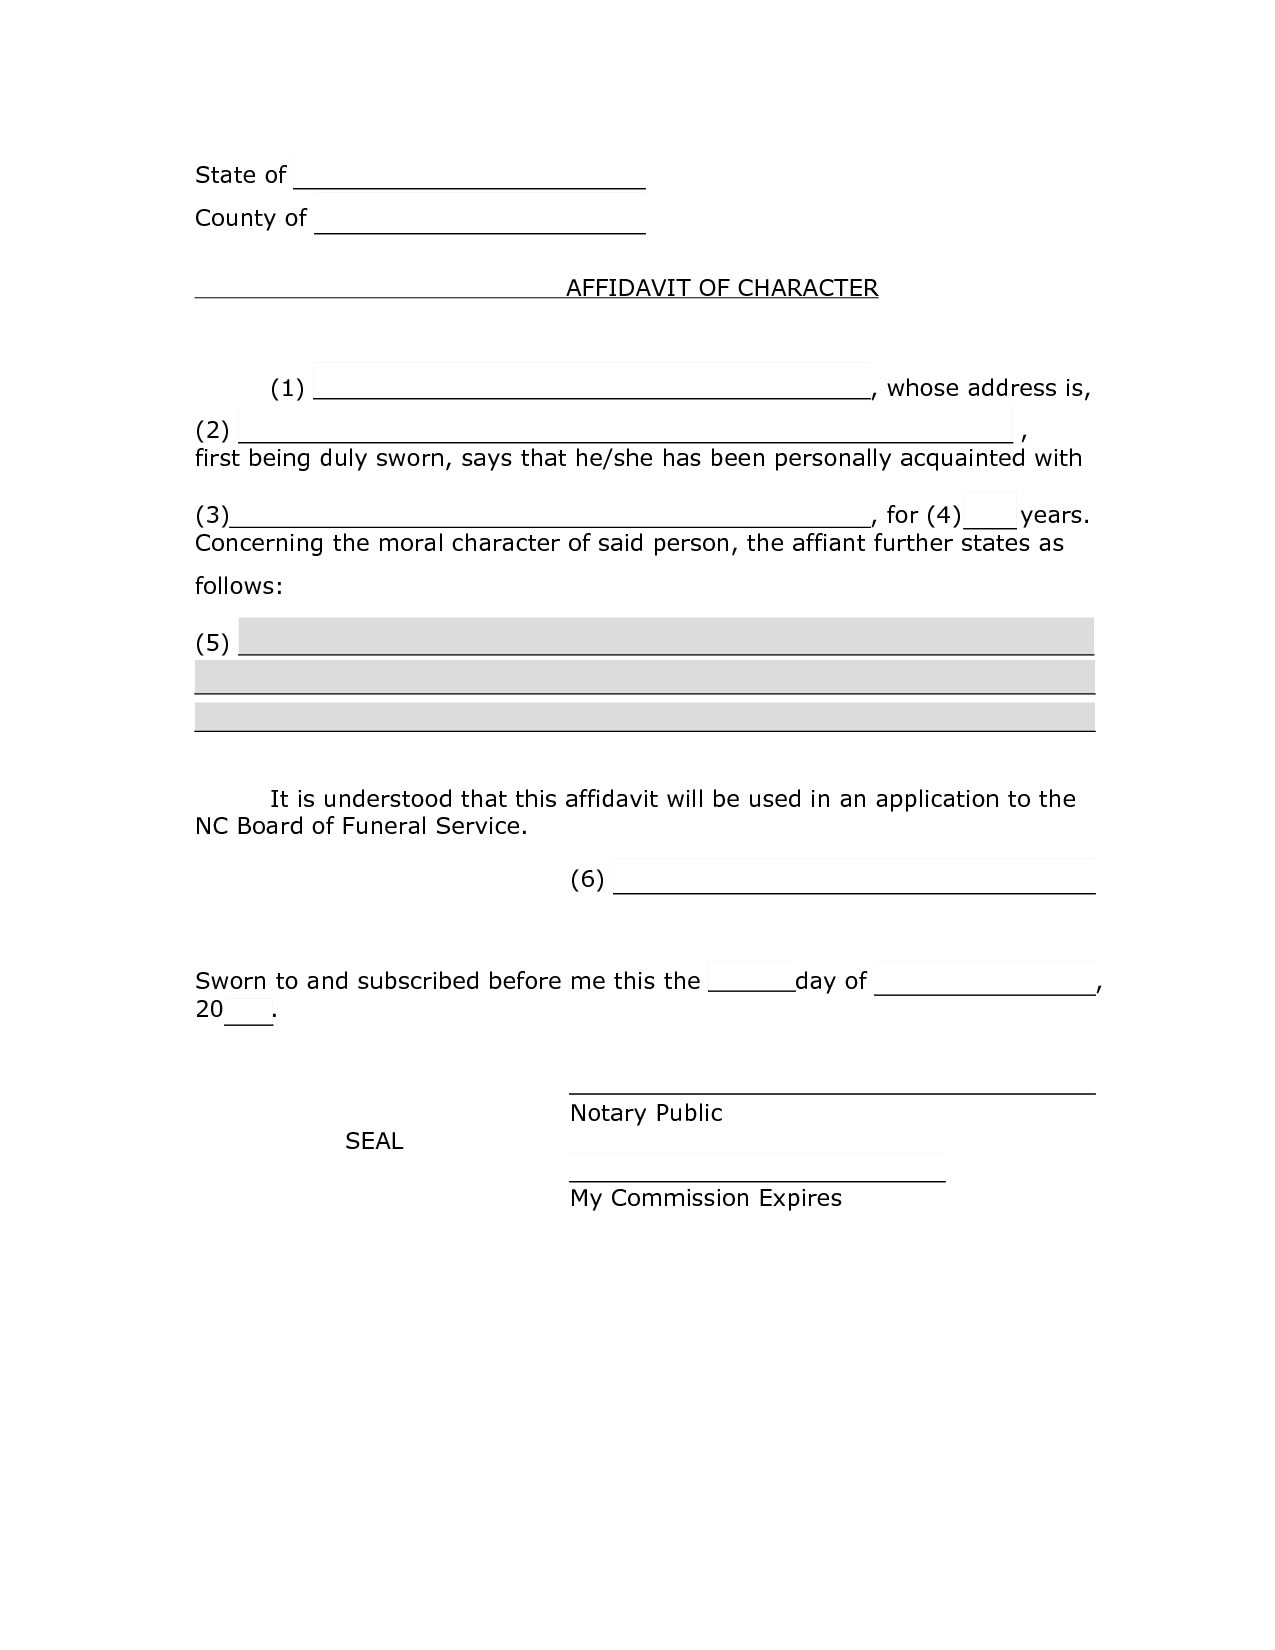 Character Affidavit Sample - PDF by smo71832 - affidavit of ...